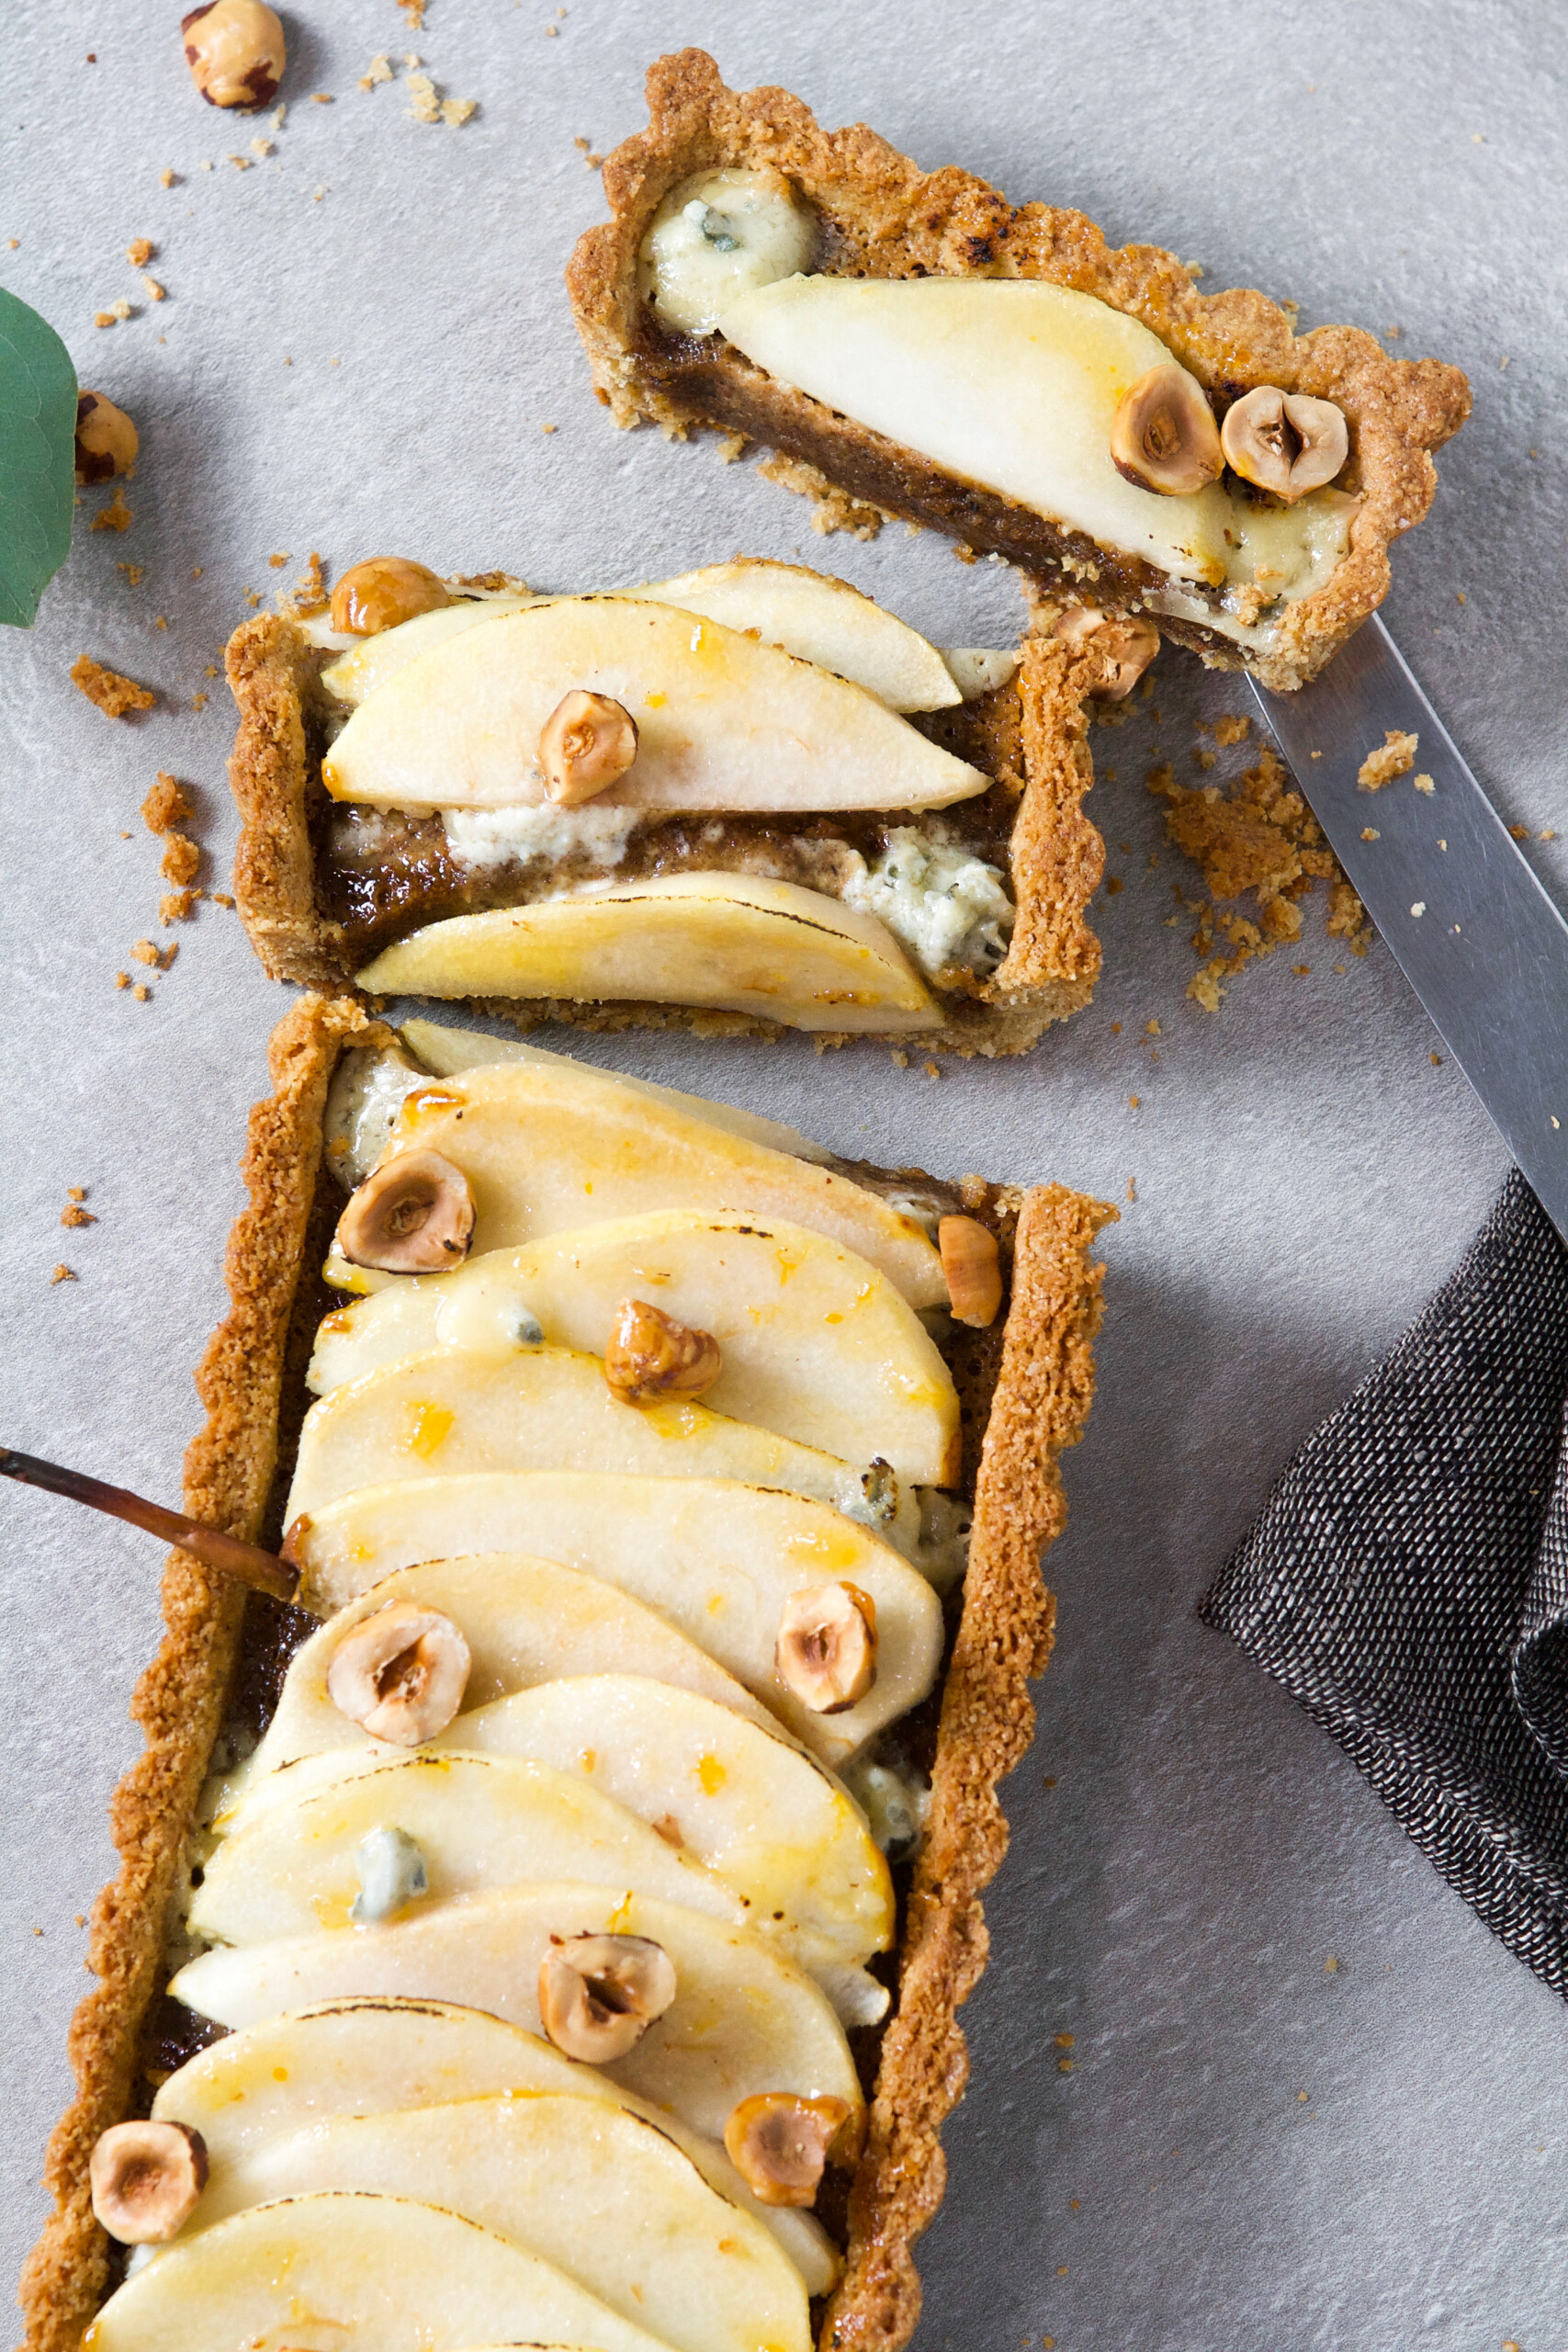 Photograph of a long pear tart on a gray background